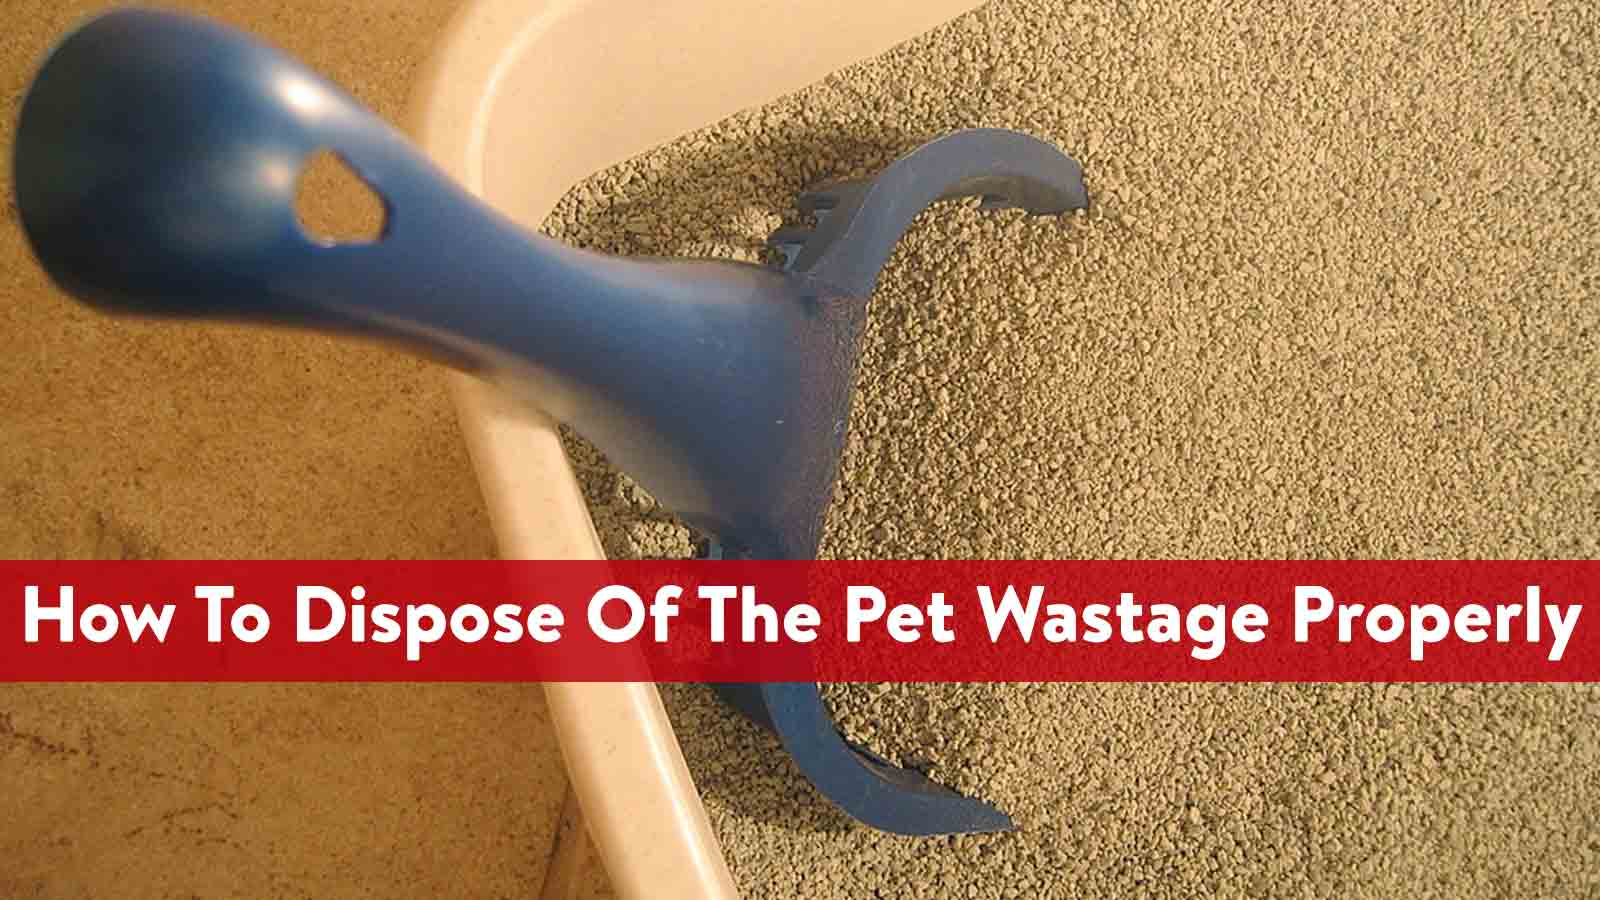 How To Dispose Of The Pet Wastage Properly